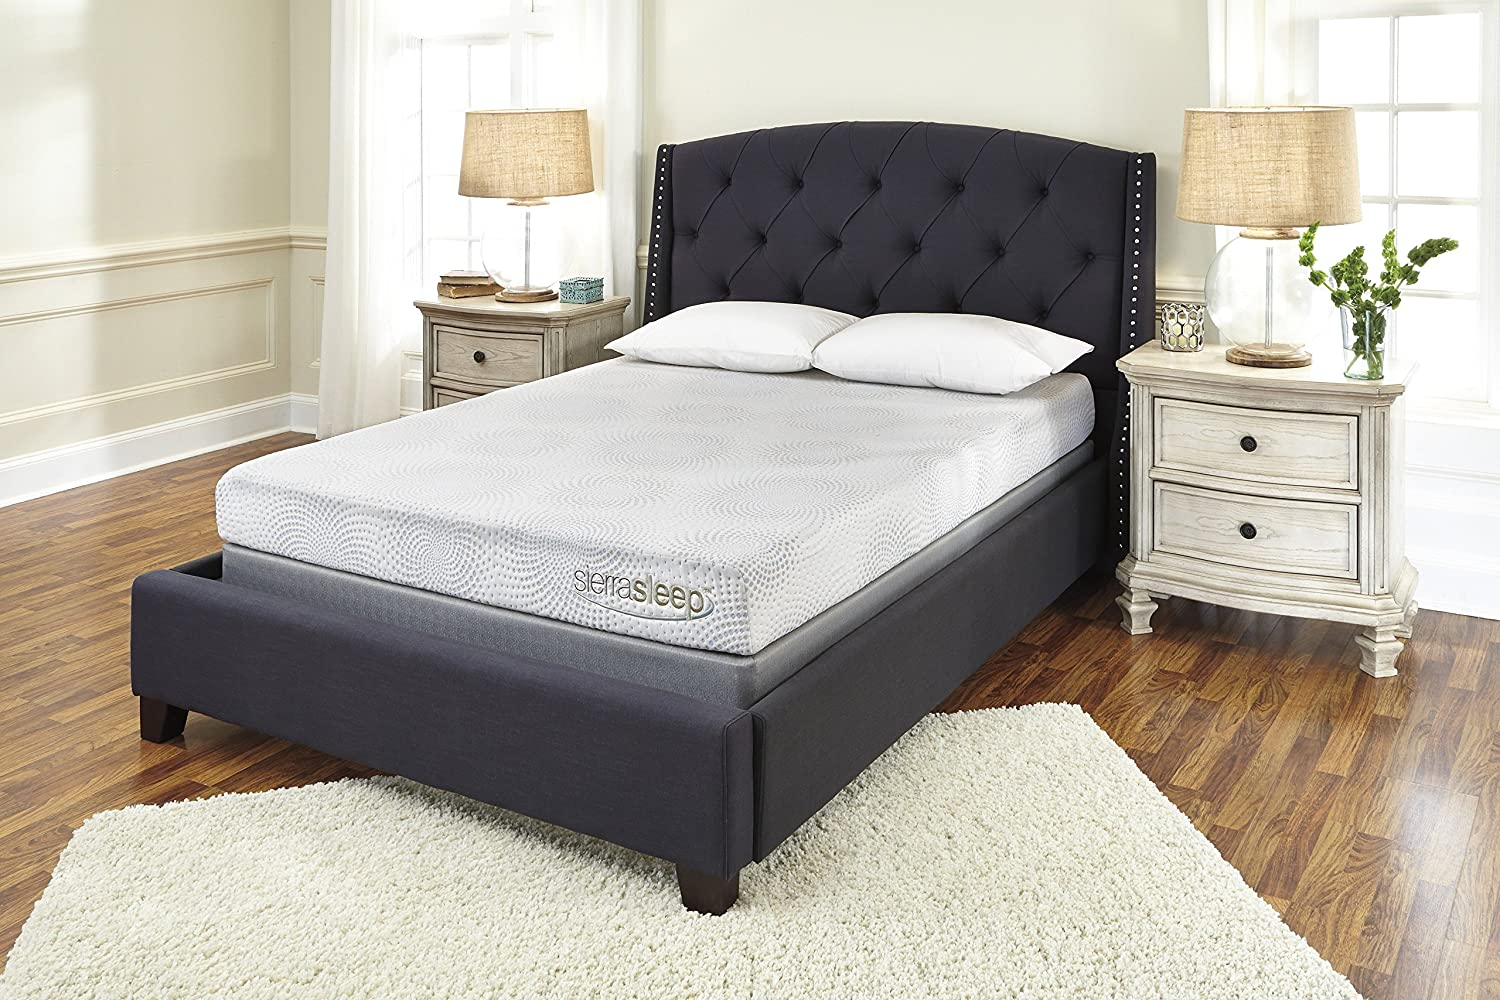 Amazoncom Sierra Sleep by Ashley 7 Memory Foam and Gel Mattress